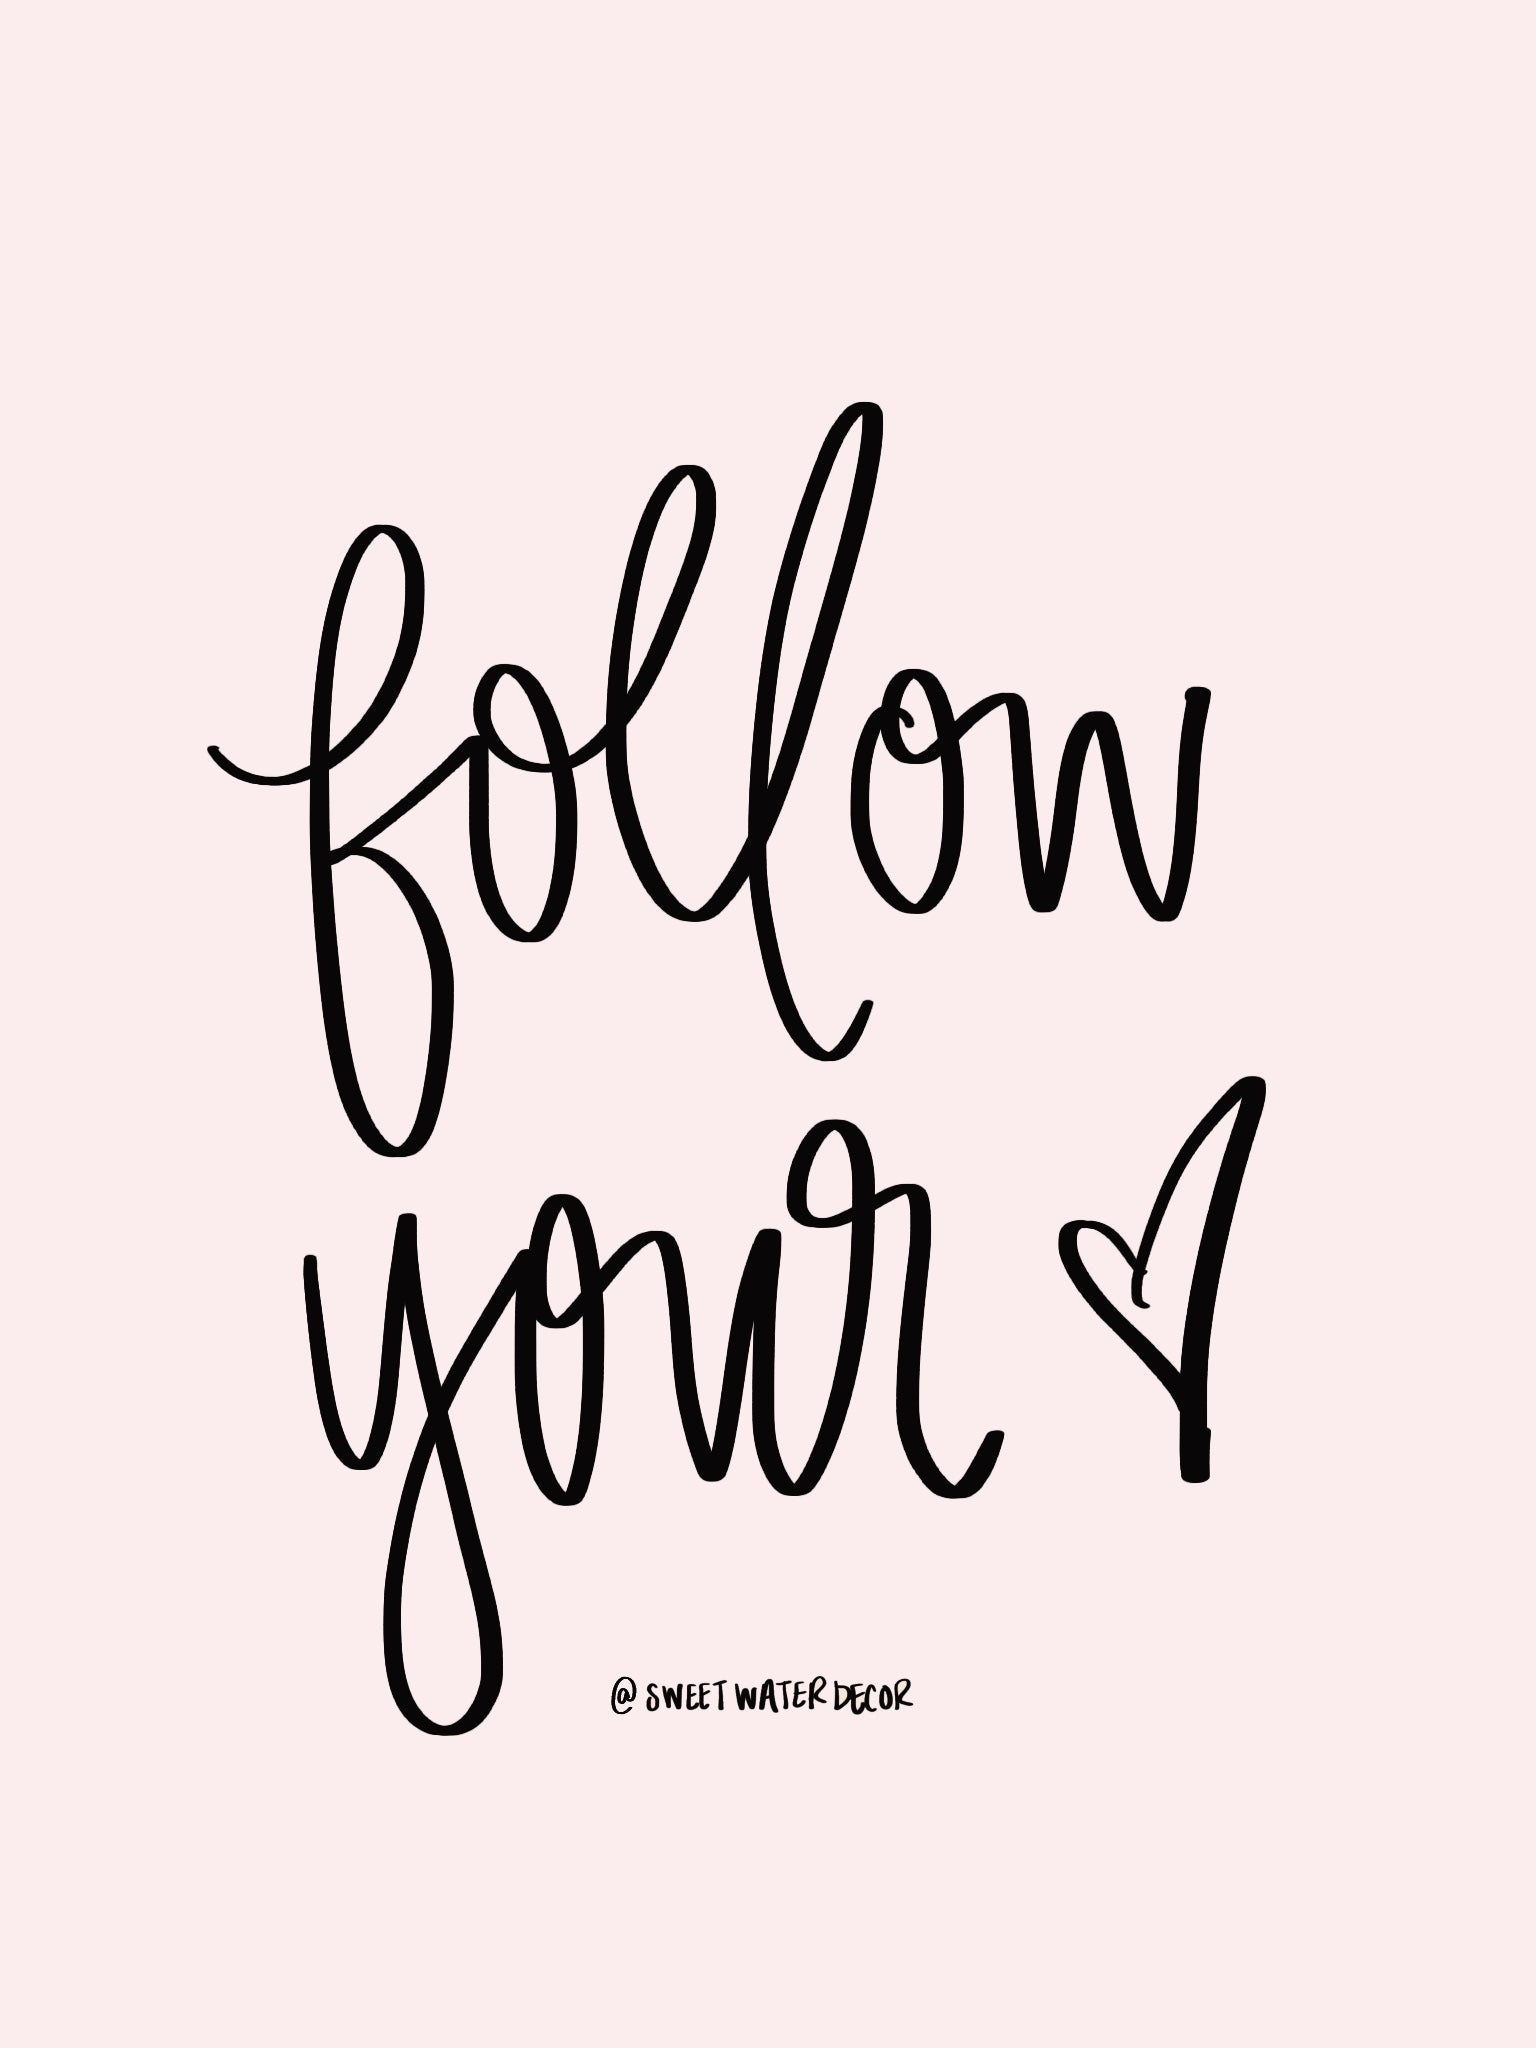 follow your heart motivational hand lettered quote